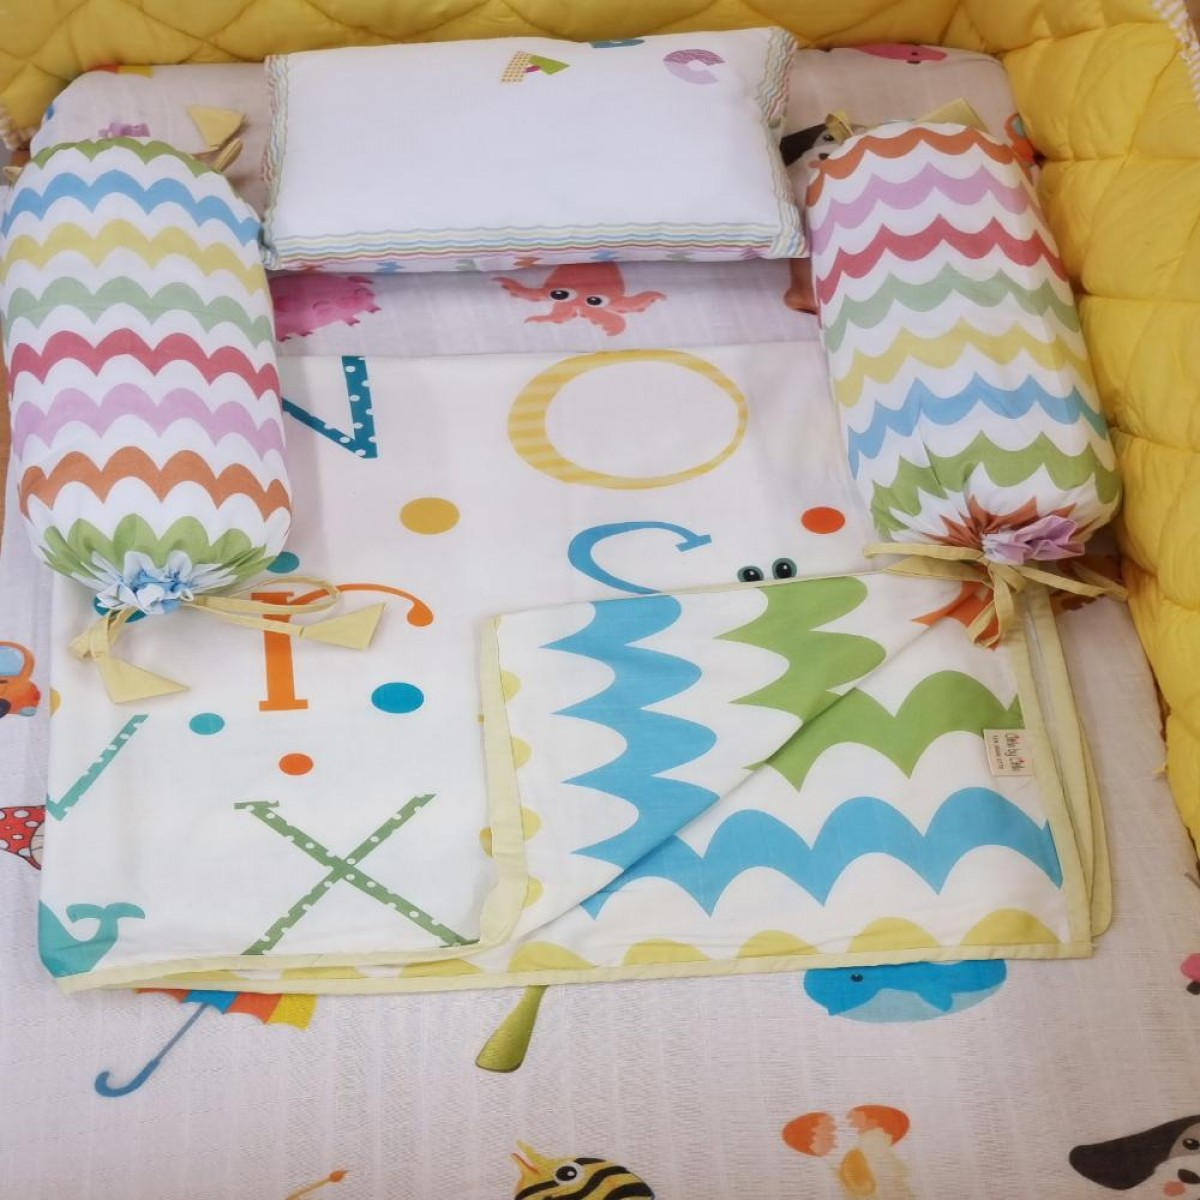 Cot Bedding Set with Organic Baby Dohar Blanket and Cotton Pillow - ABCD